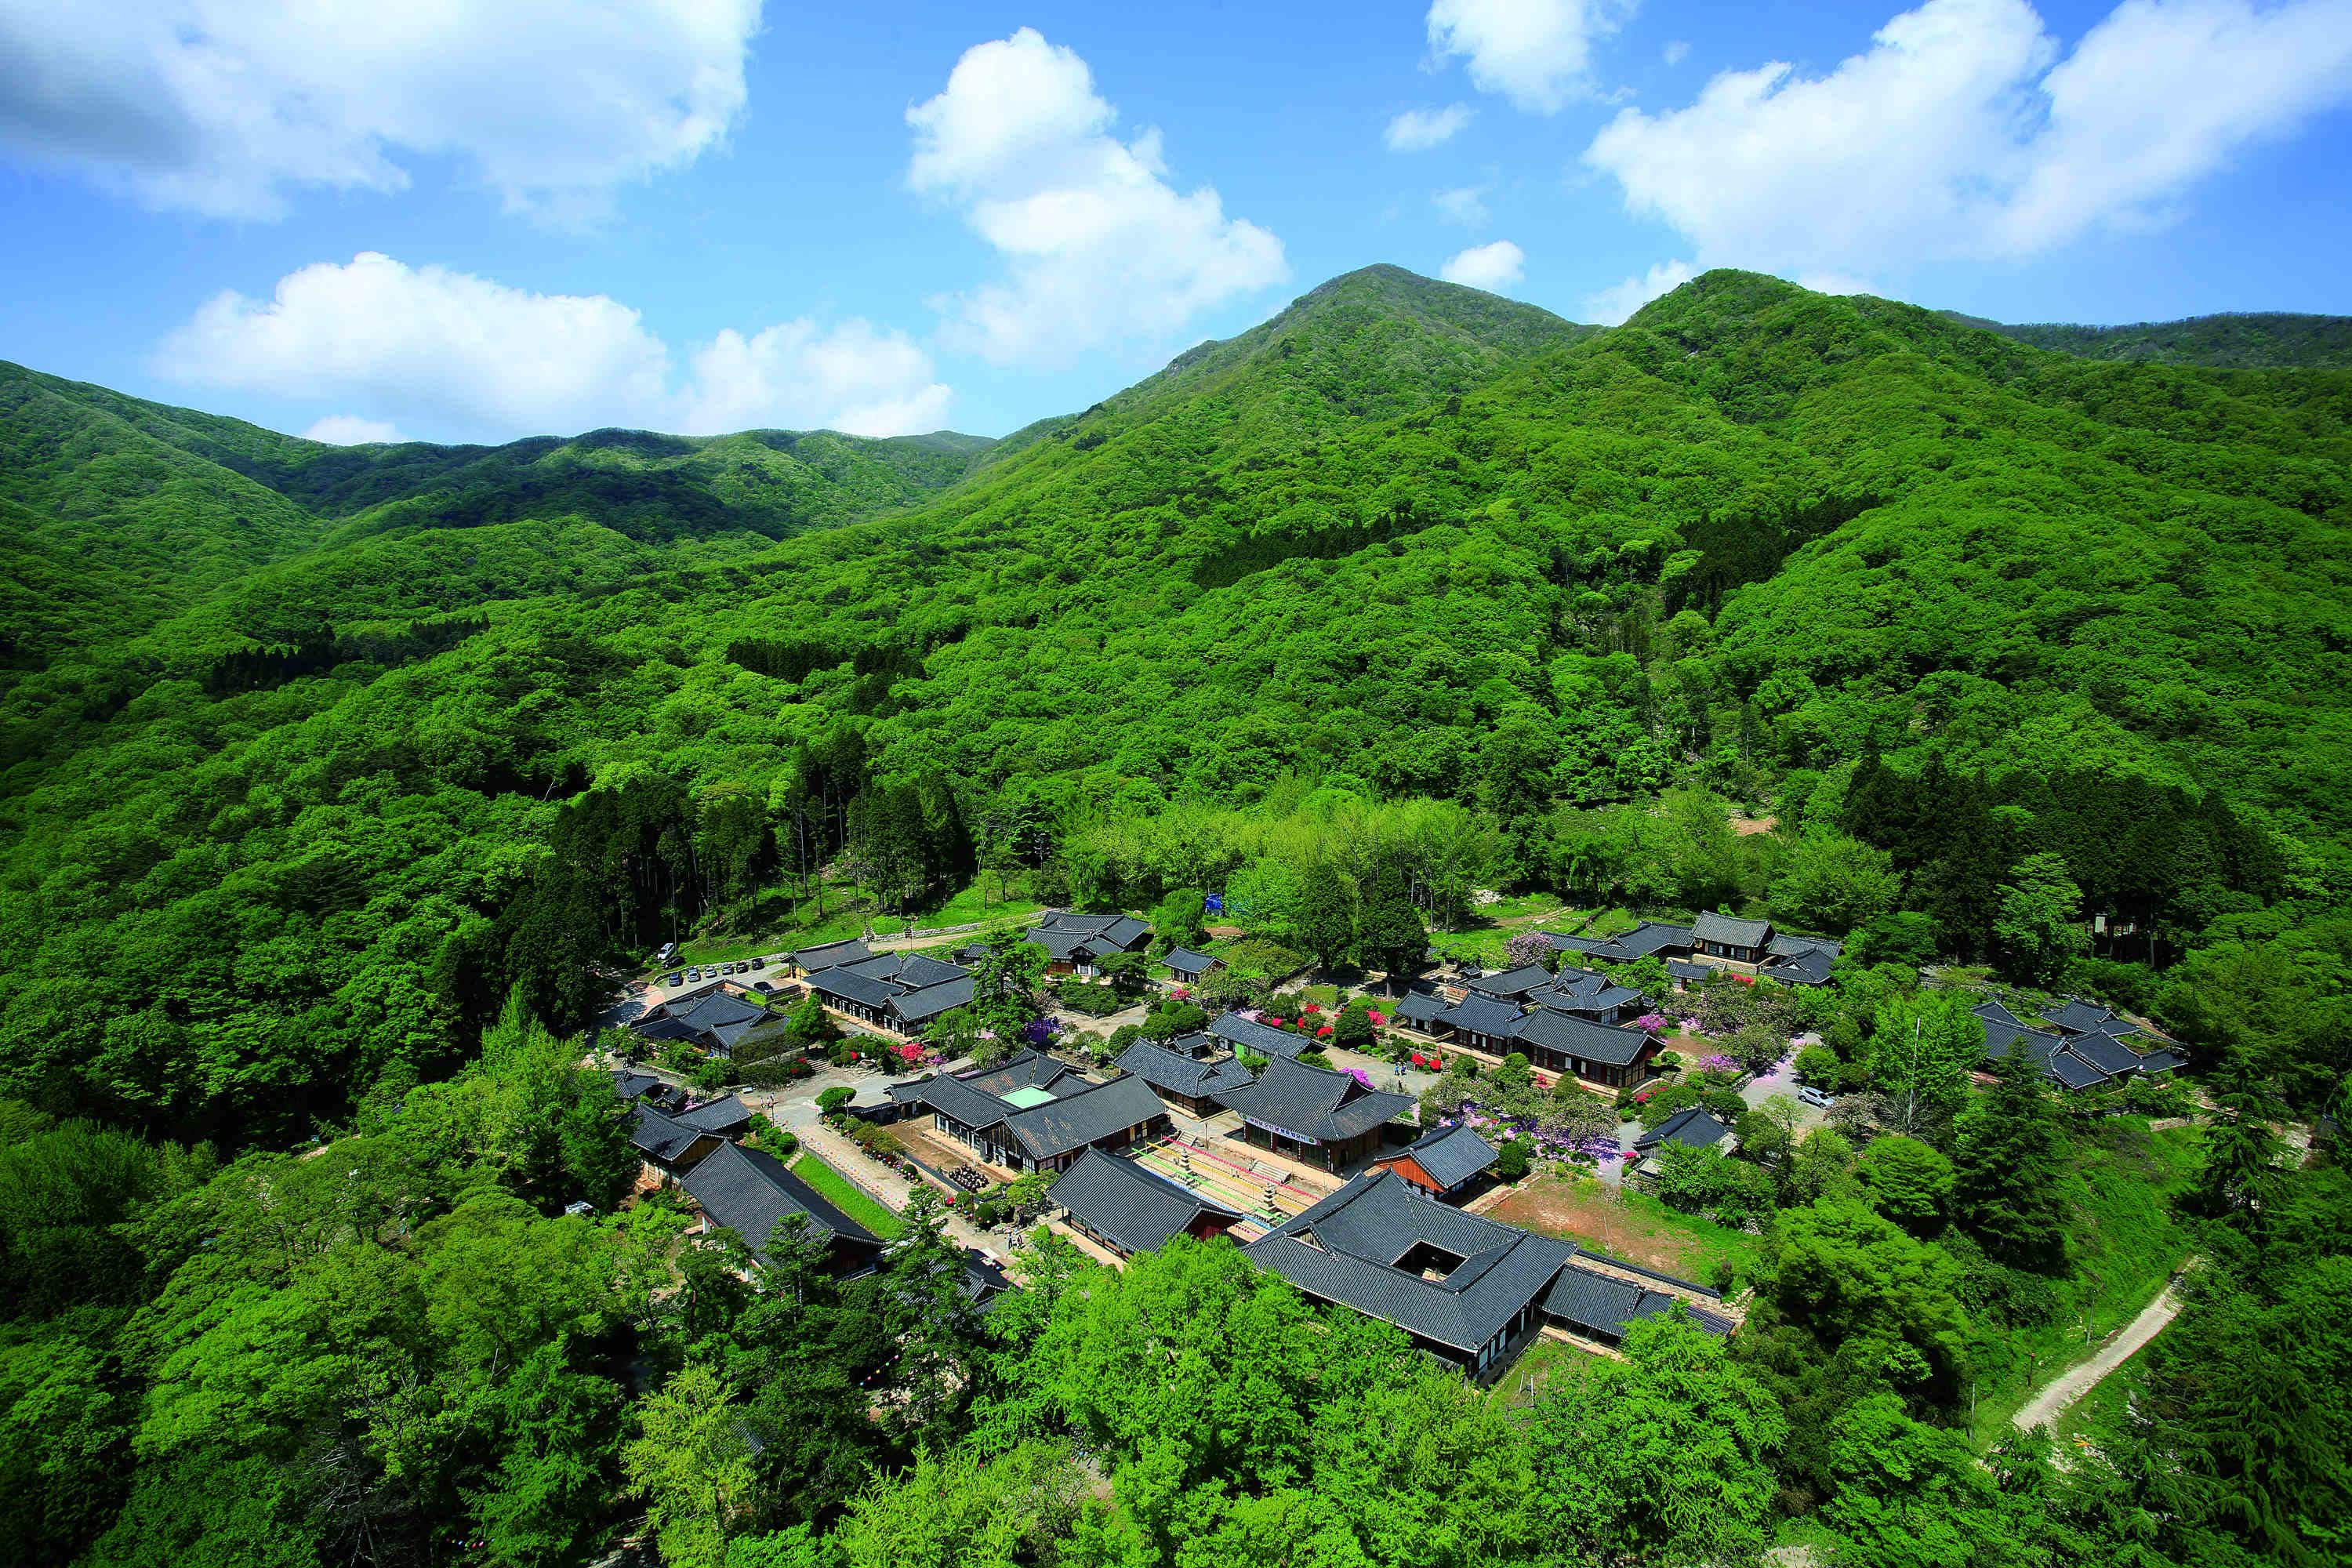 Korea's Buddhist mountain monasteries added to World Heritage List